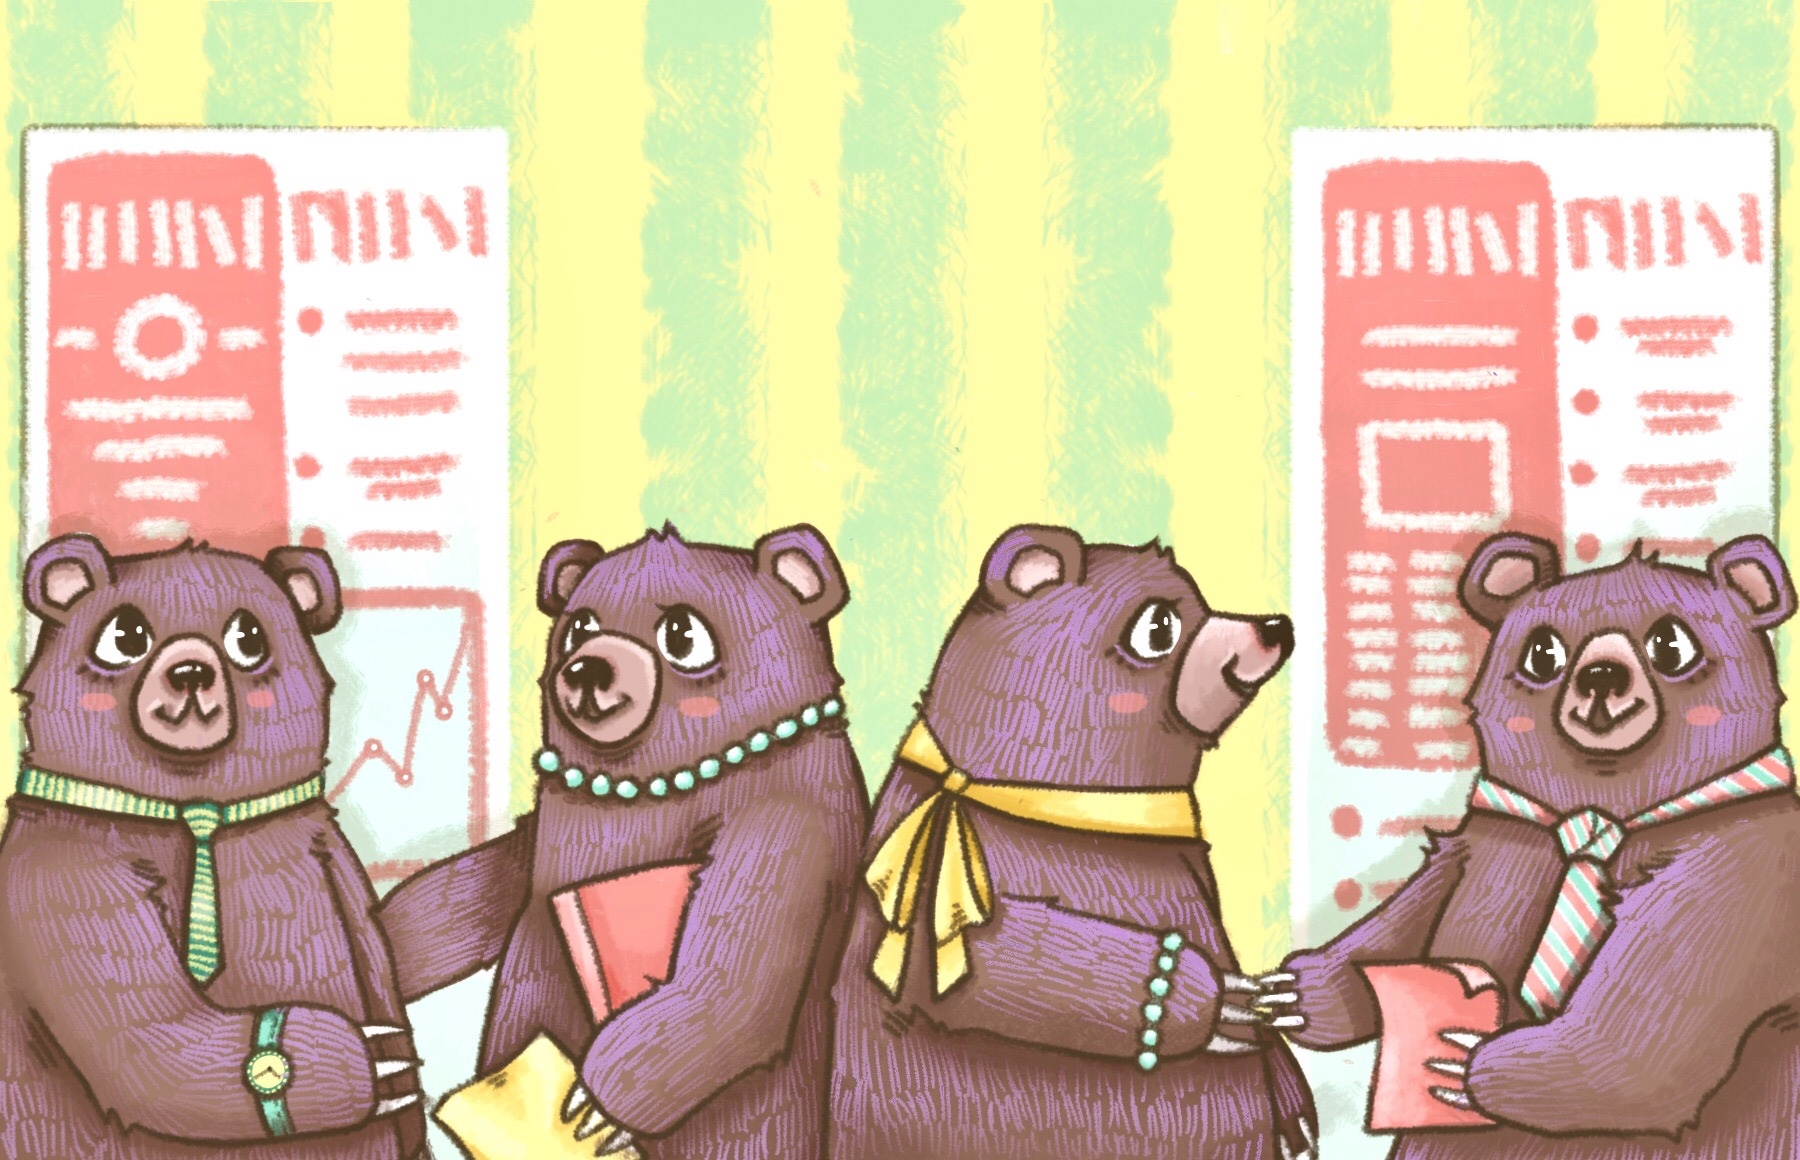 Illustration of four bears at a career fair, greeting each other and exchanging resumes.